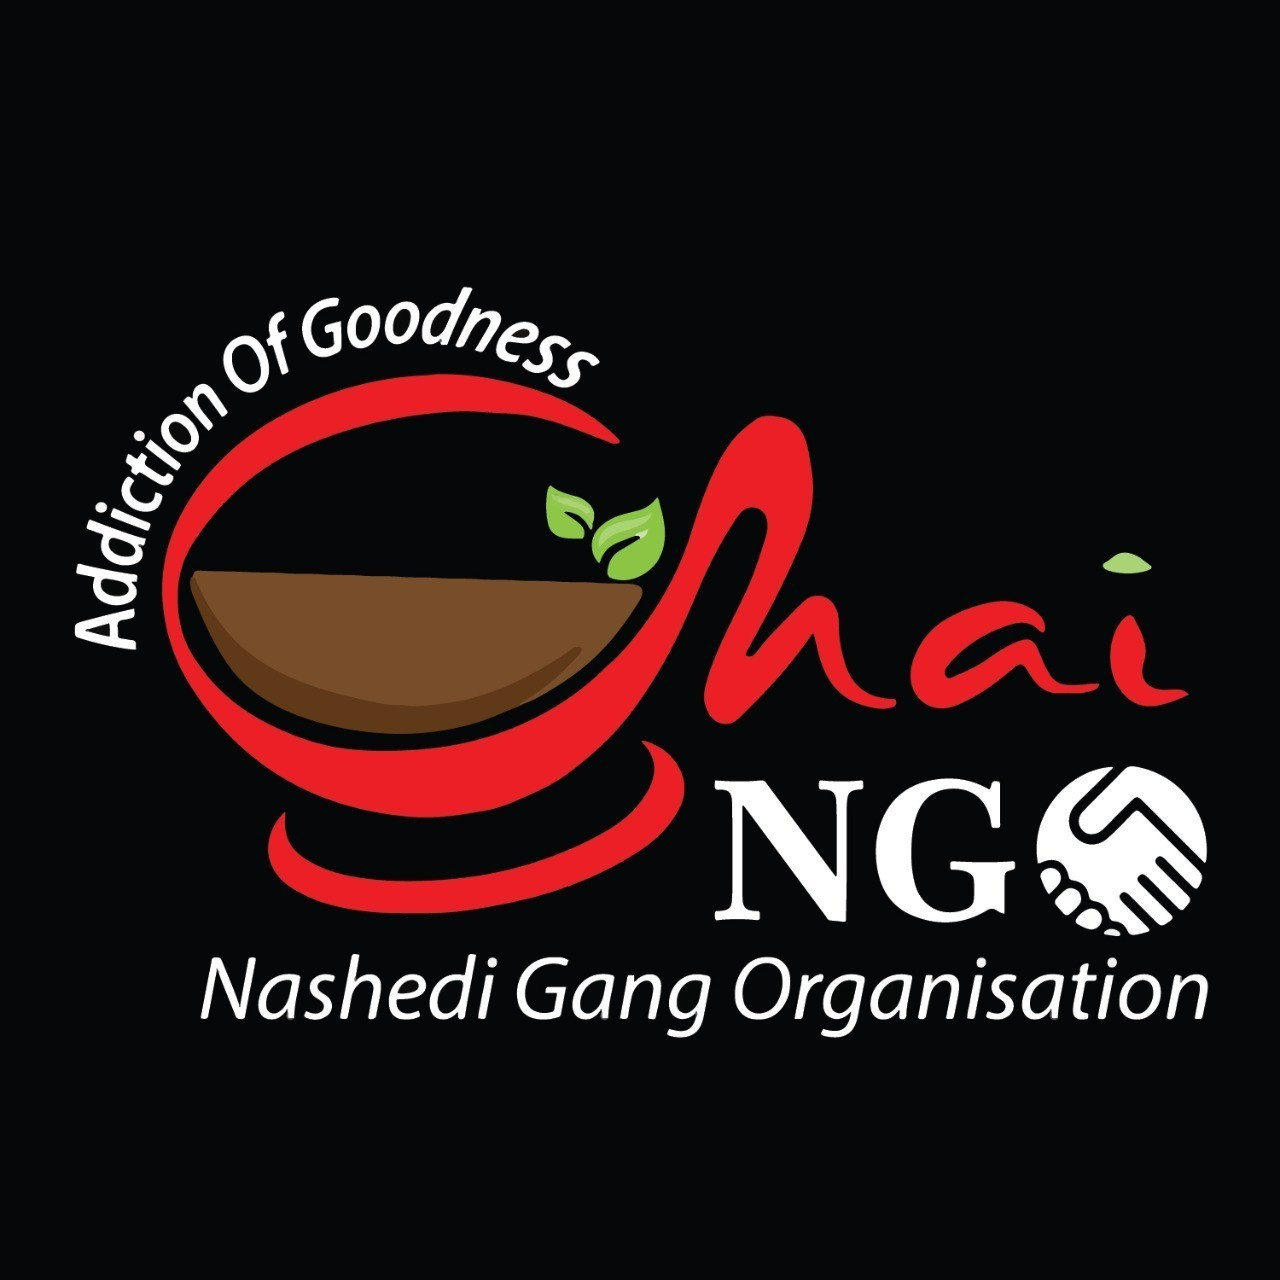 Food Franchise Business Opportunity  Chai NGO Chaat Formula and Chic